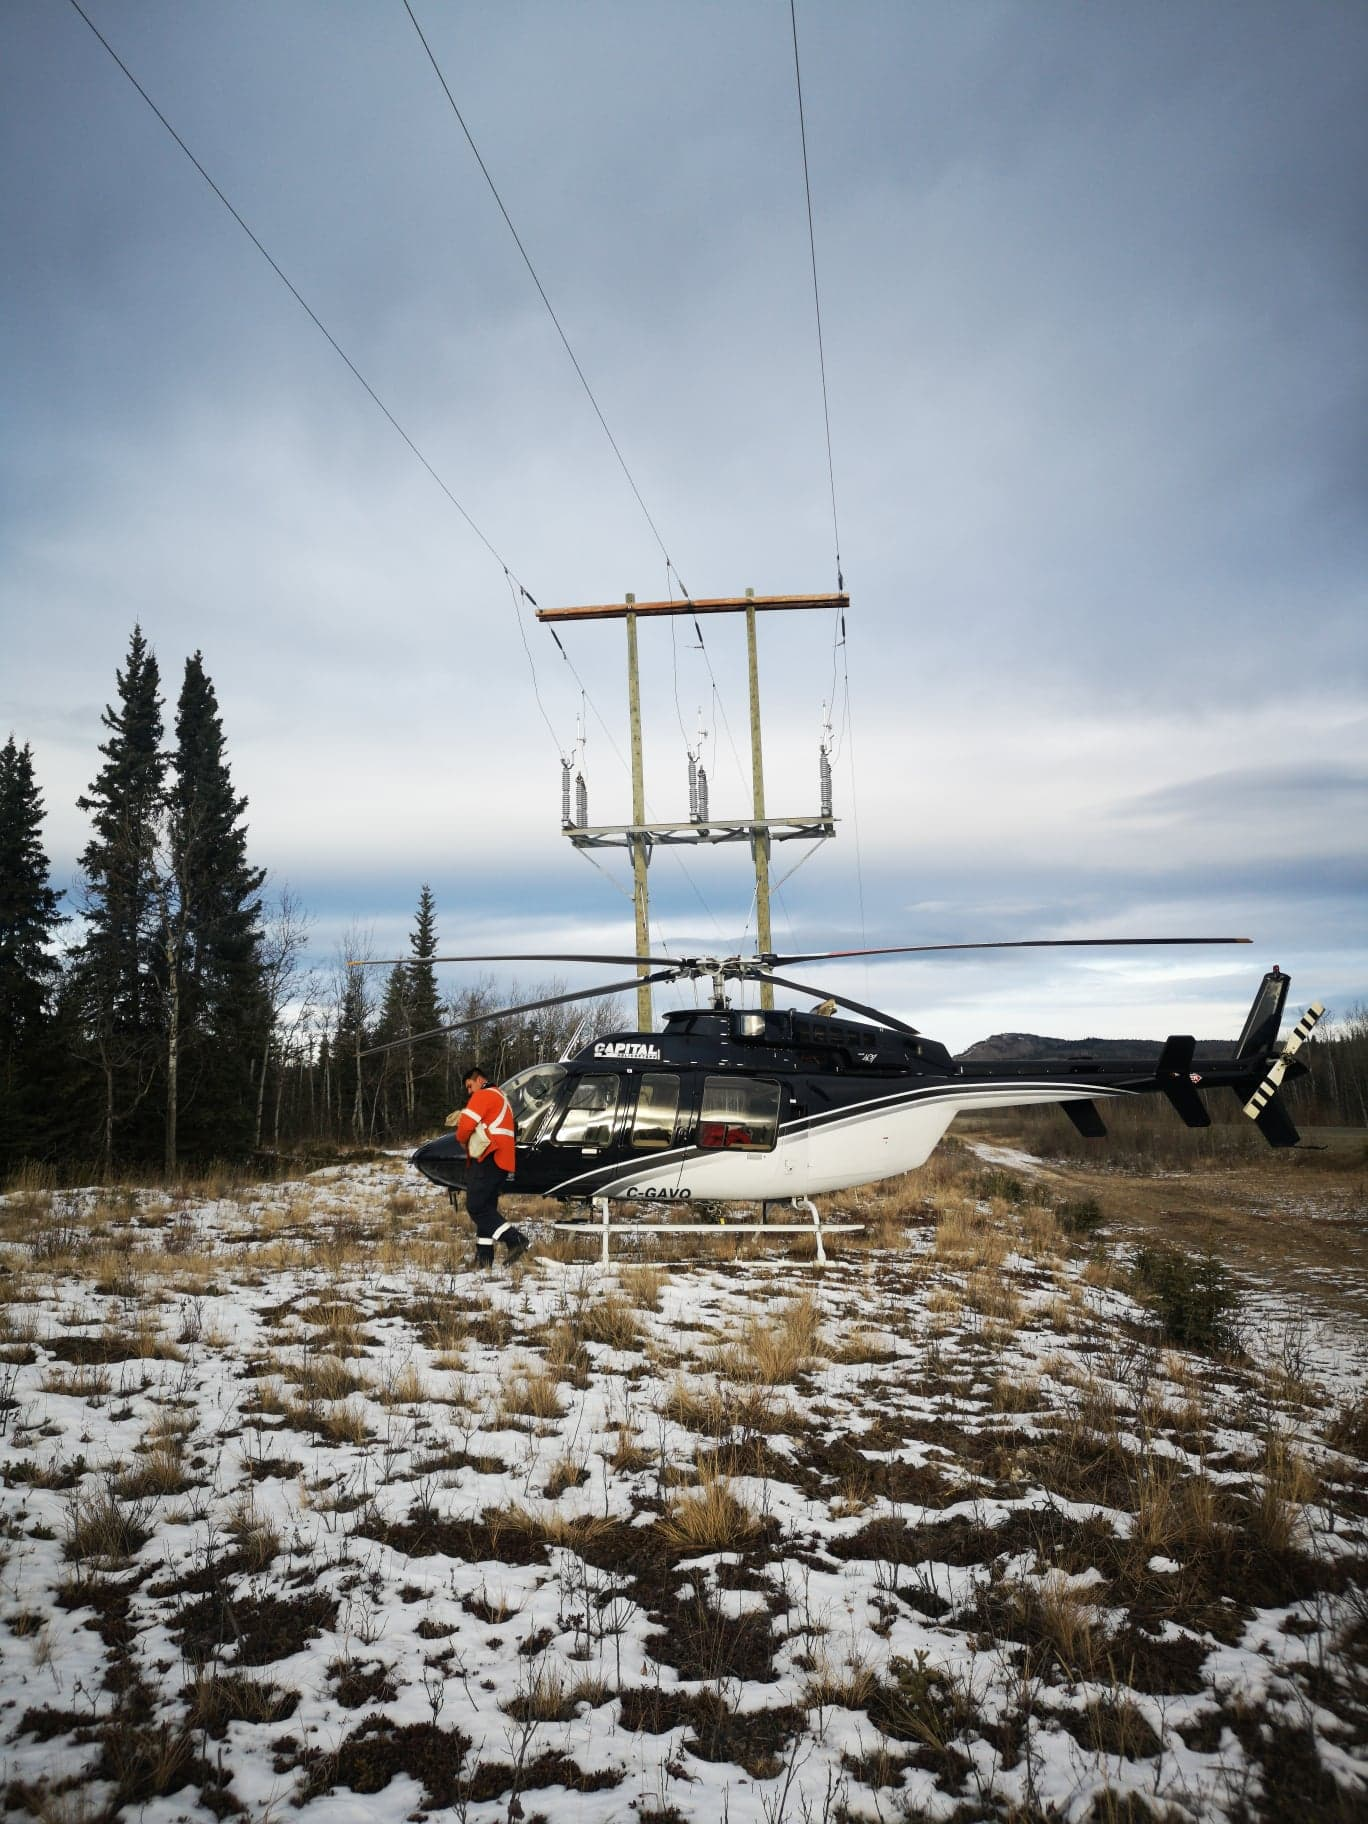 Capital Helicopters transporting crew to cellphone tower for maintenance.